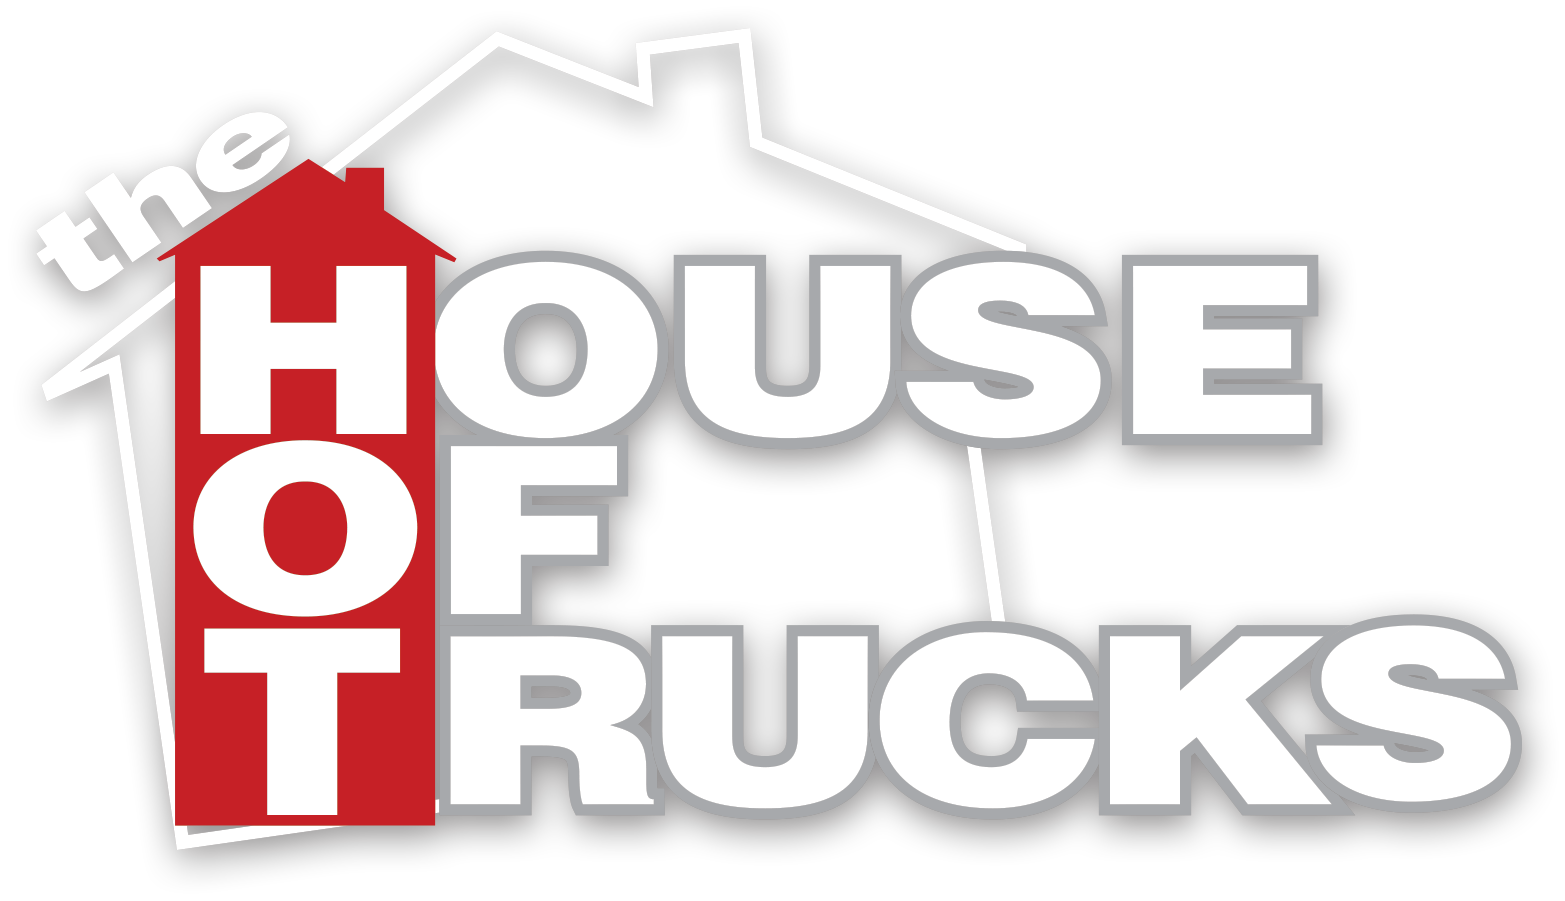 HOT-Trucks-WWW-Logo